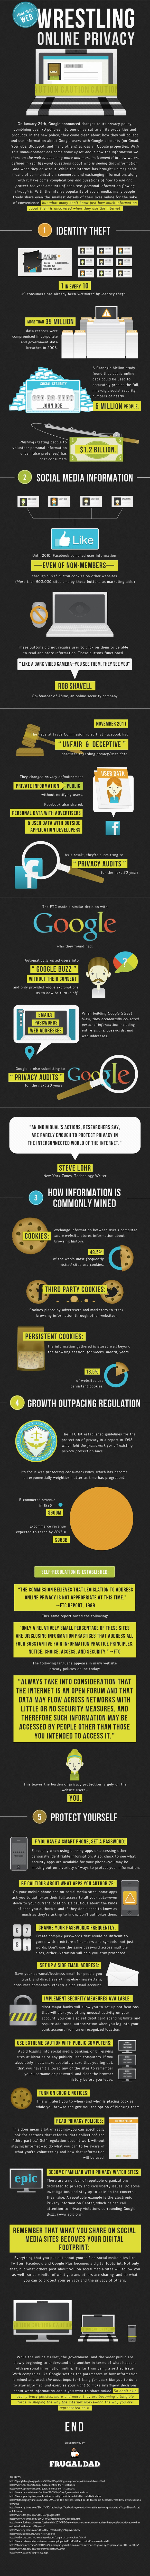 Online Privacy Infographic